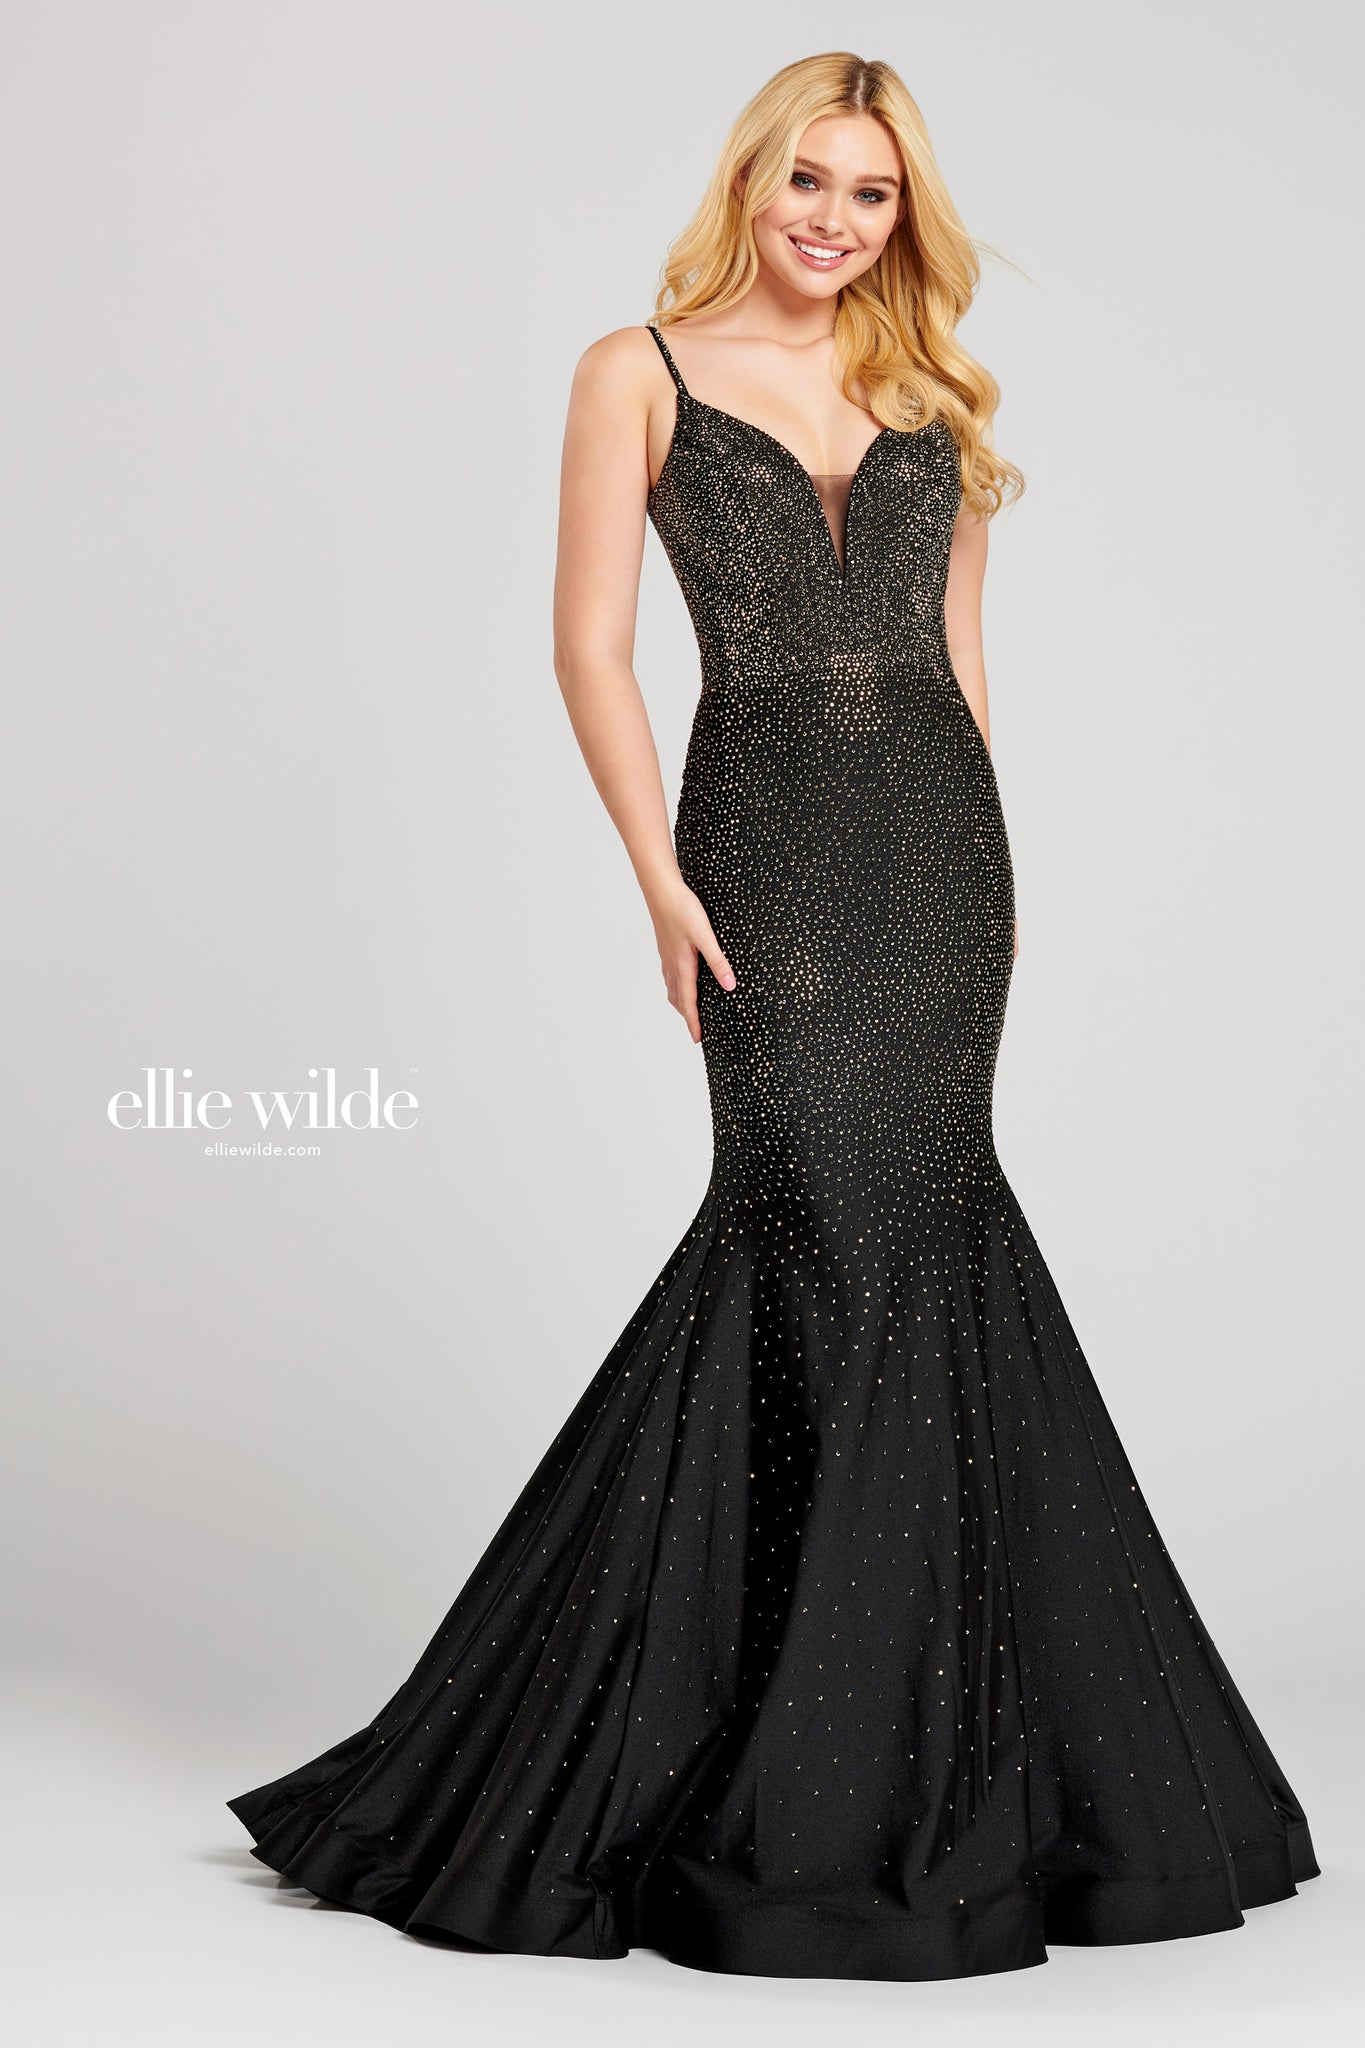 Ellie Wilde Embellished Black Evening Dress